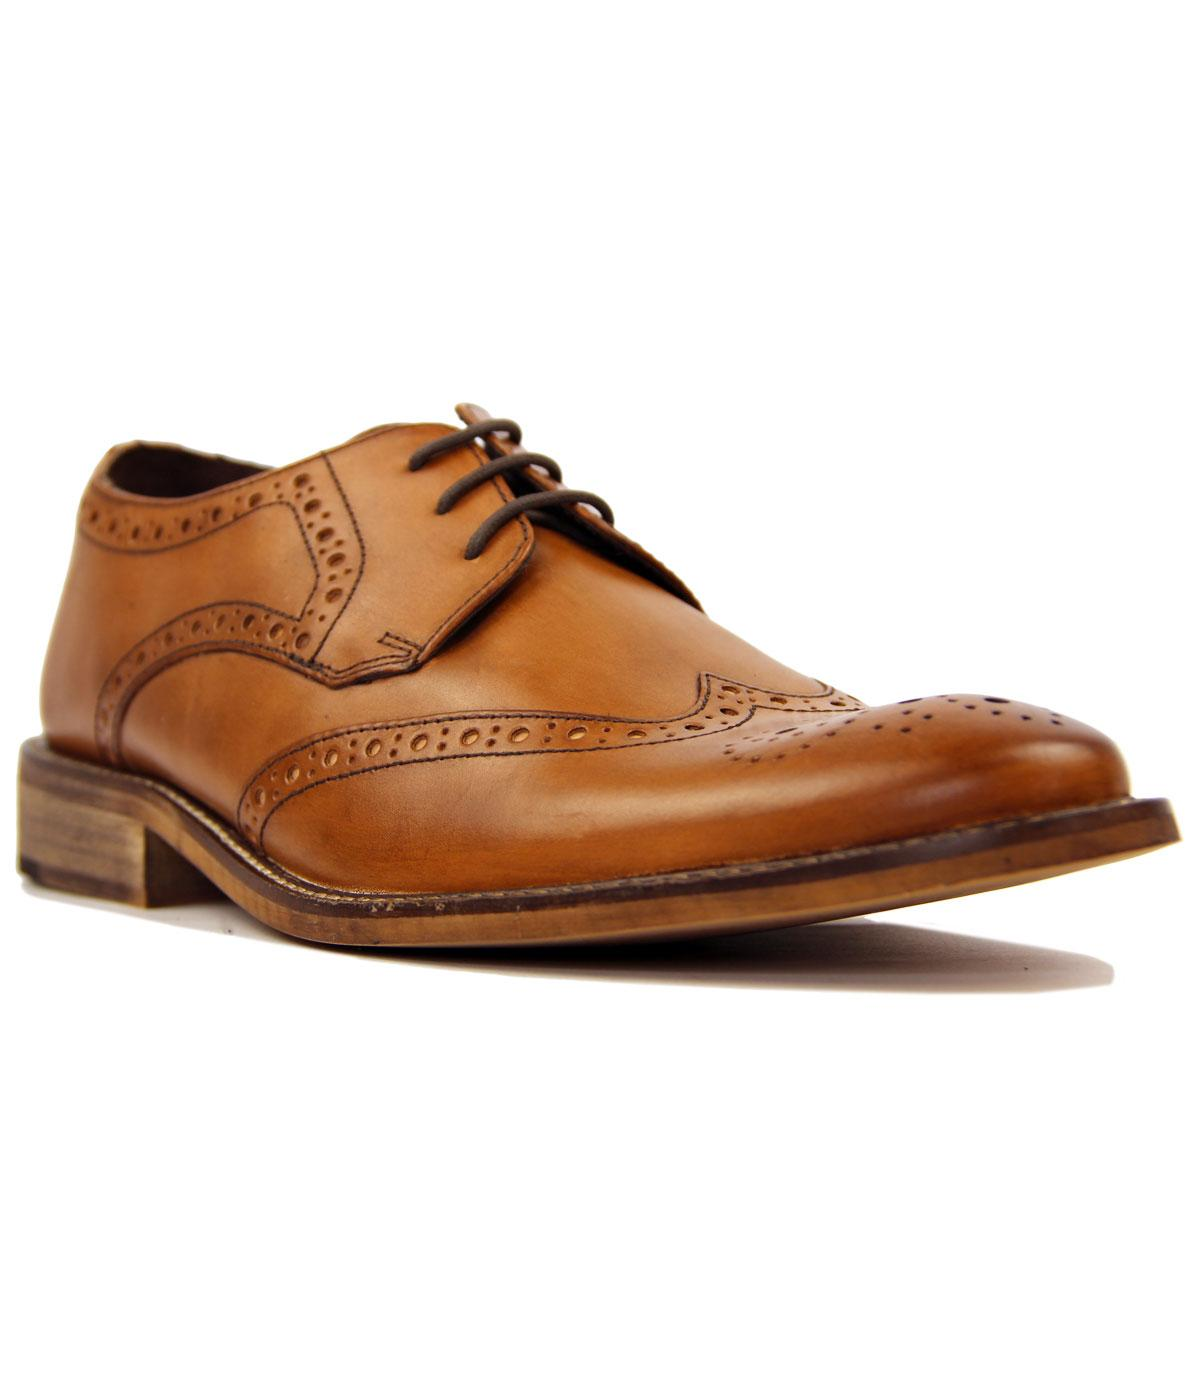 Pace IKON Retro Mod Punched Wingtip Brogue Shoes